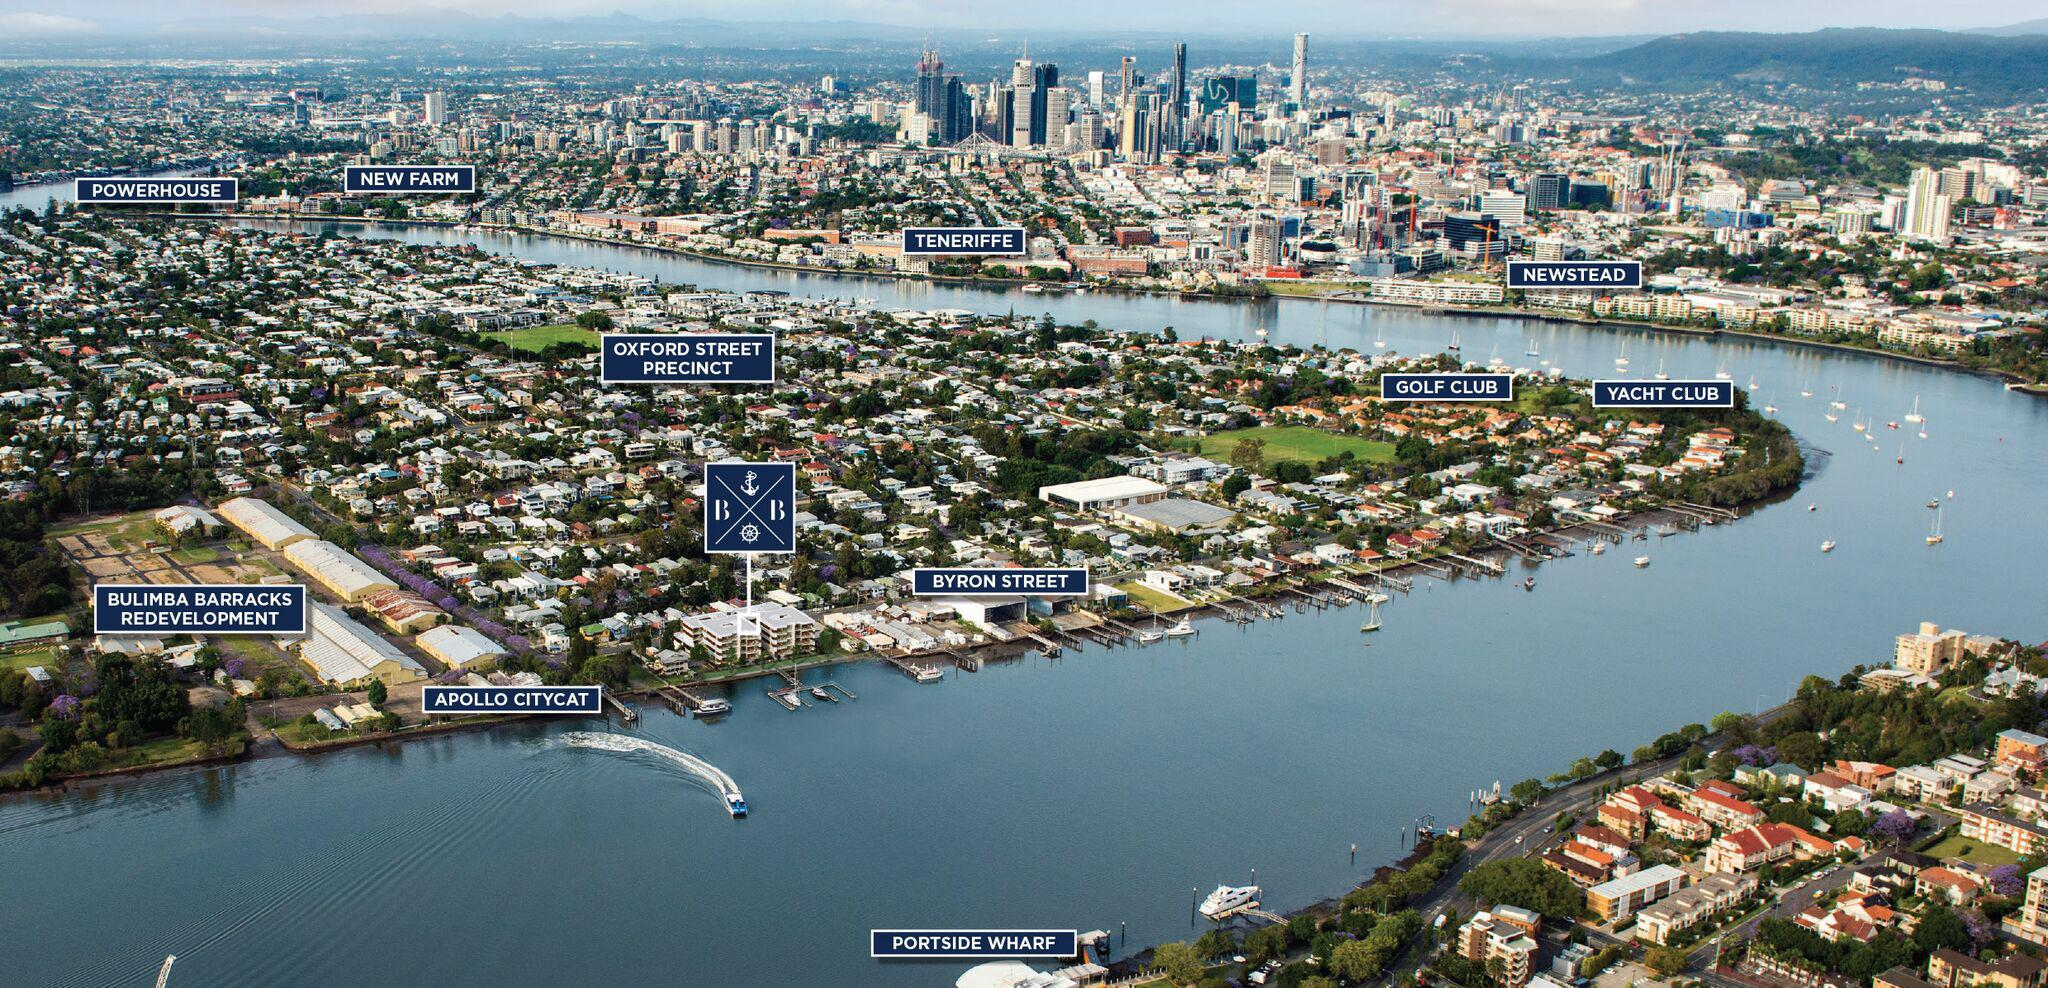 The Boatyard development. Bulimba's soon-to-be developed waterfront includes the old barracks and the Cairnscross Quay which sold to Lendlease in August 2016.